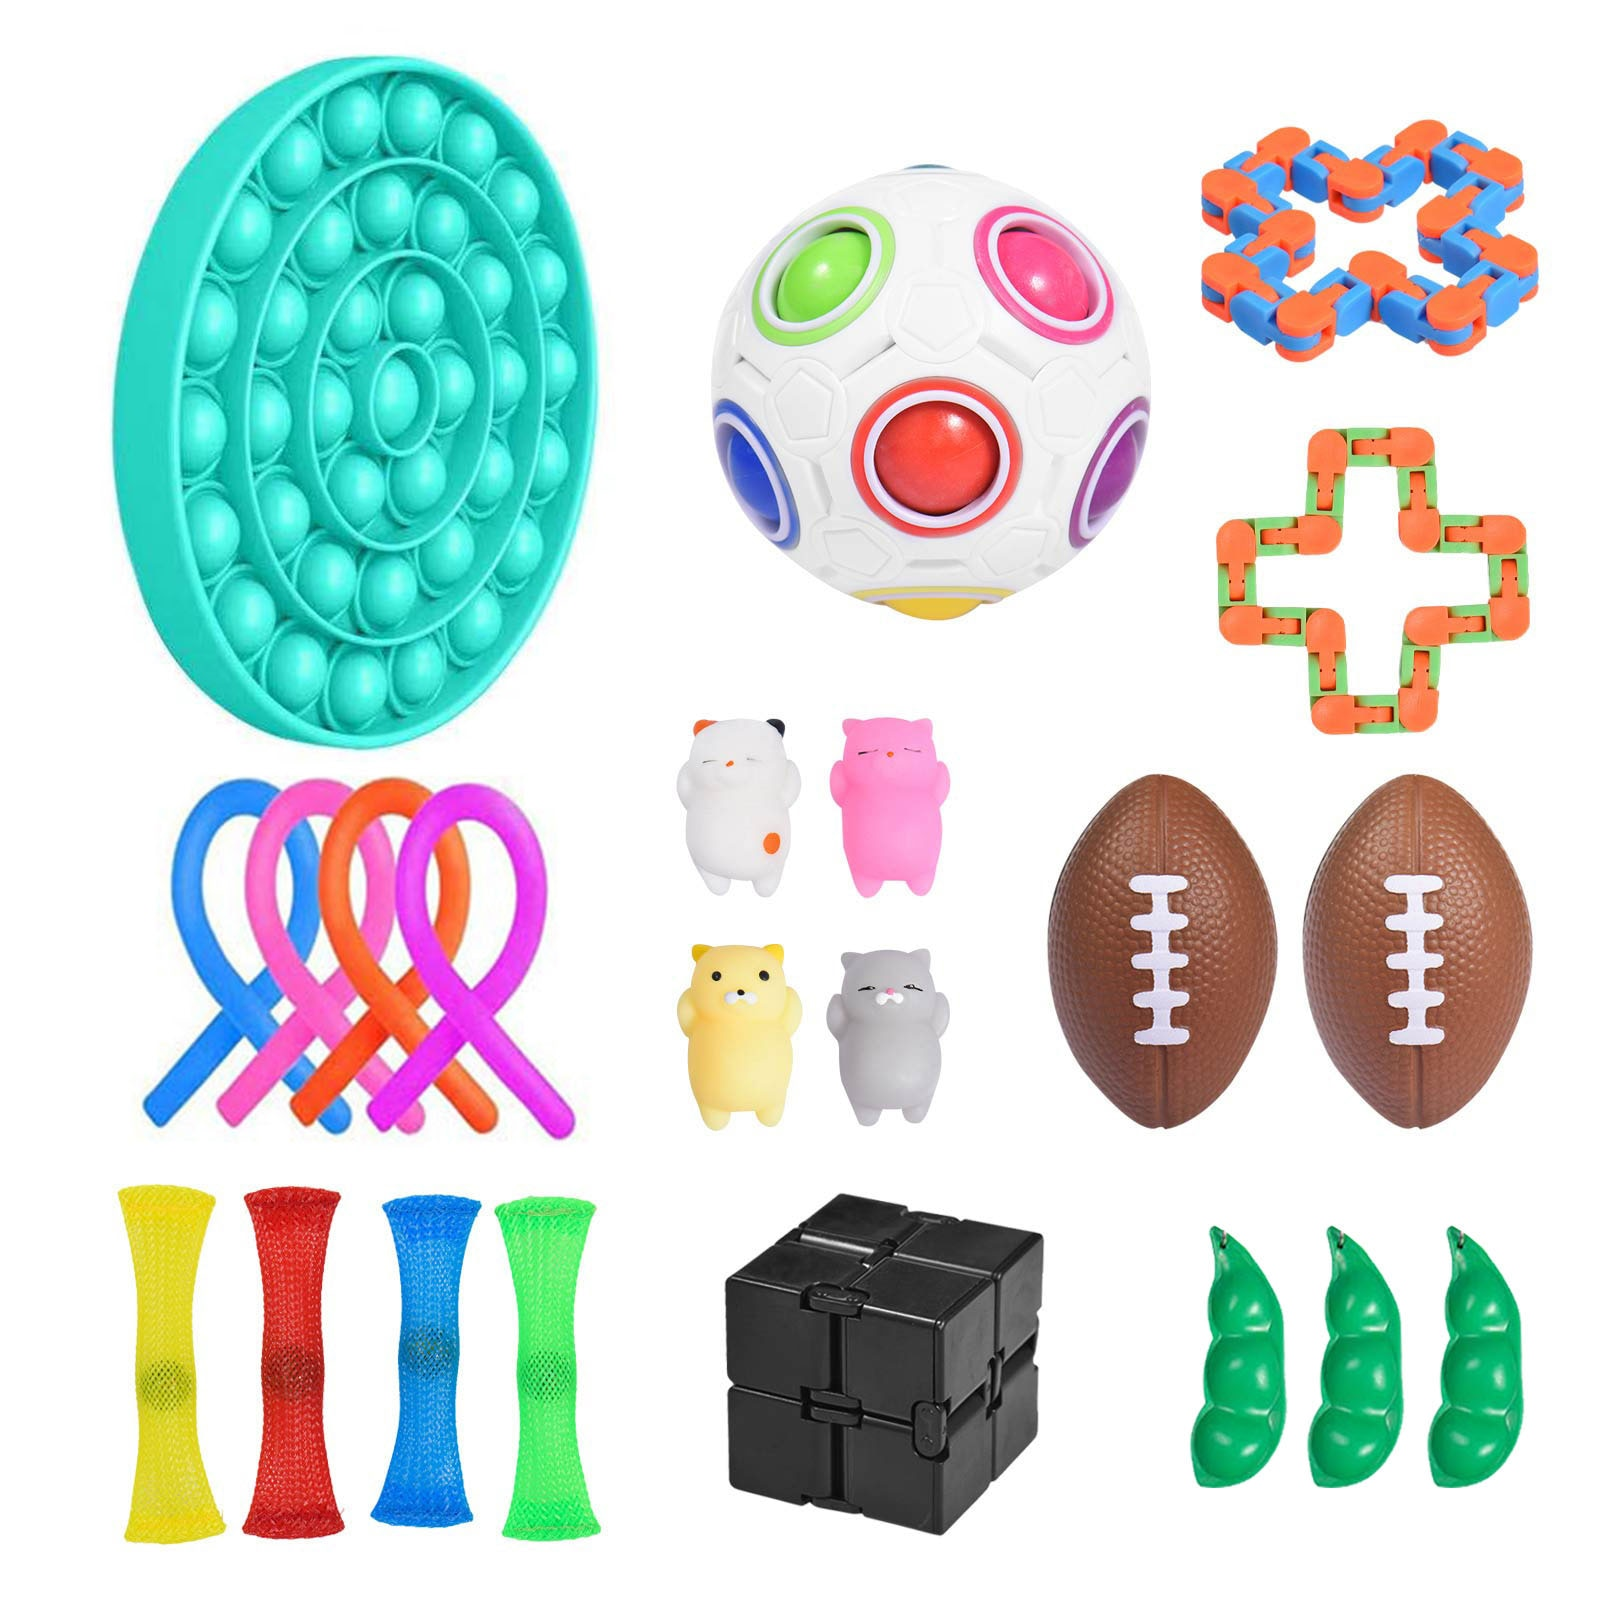 22 Pcs Fidget Sensory Toy Pendant For Office Toy Decompression Toys Set Stress Relief Toys For Kids Adults Autism Special Need enlarge